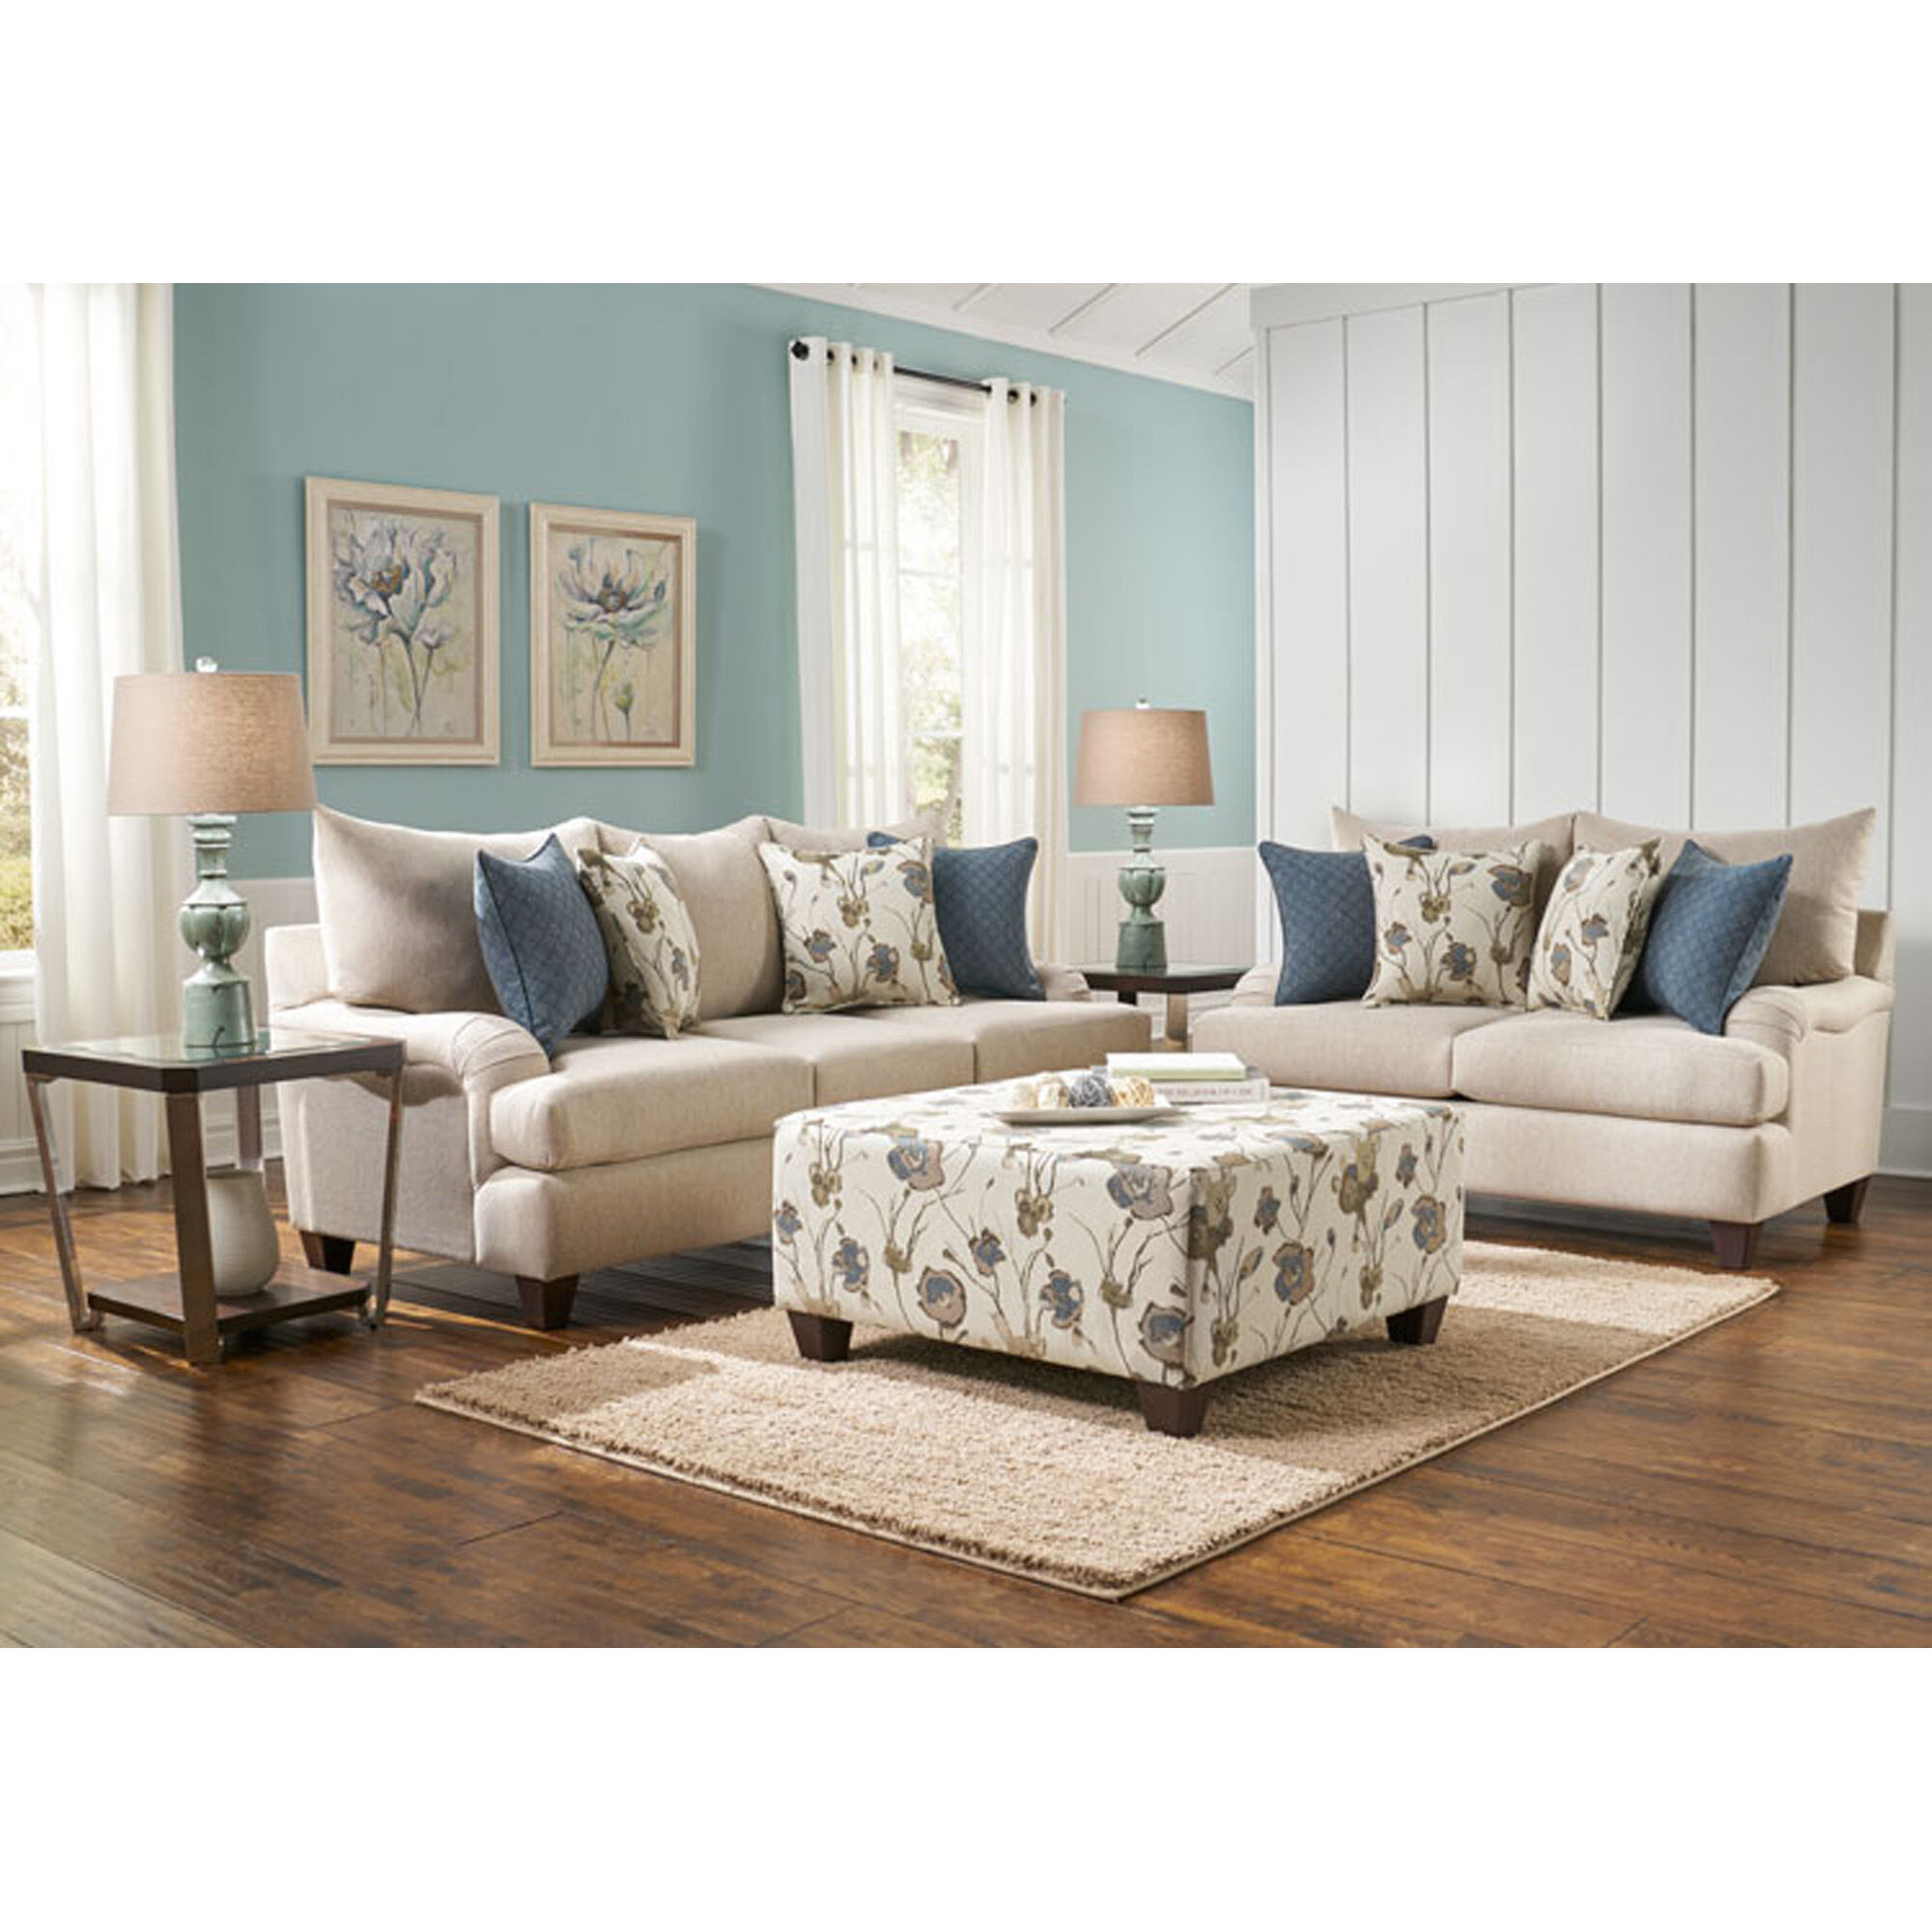 living room tables at aaron s window design ideas rent to own loveseats, sofas, and couches | aaron's